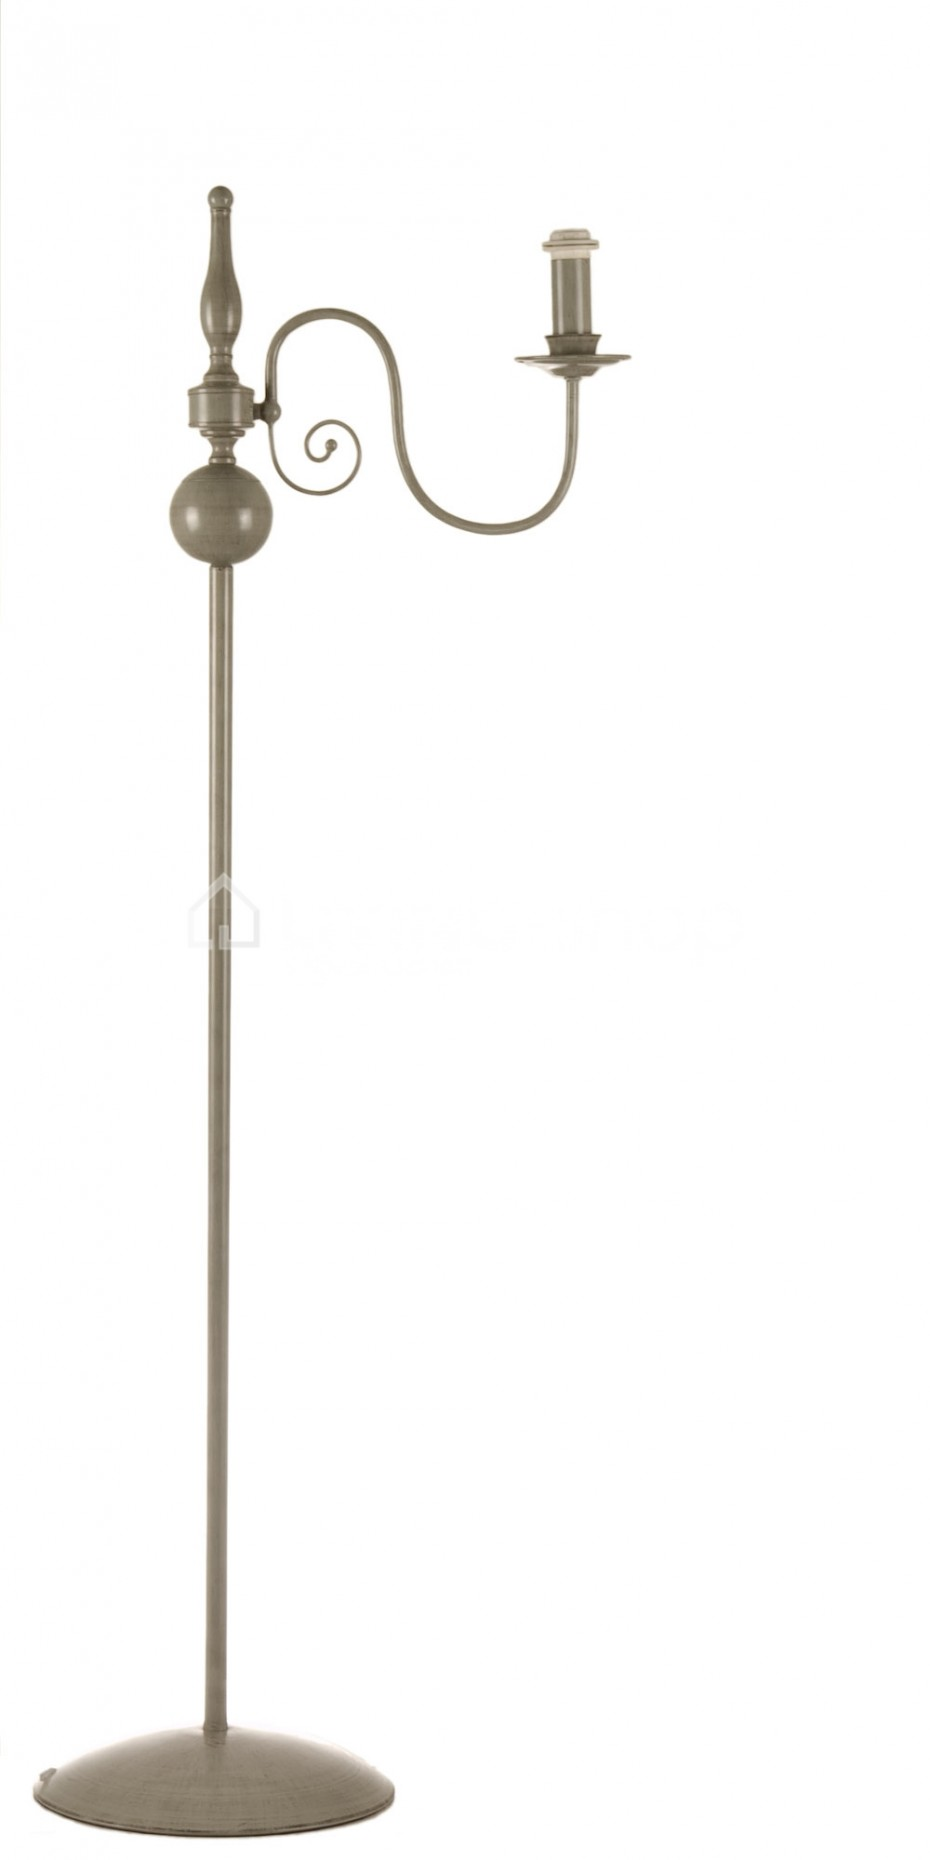 staanlamp-brugge-grey-taupe-metal-excl-1x40w